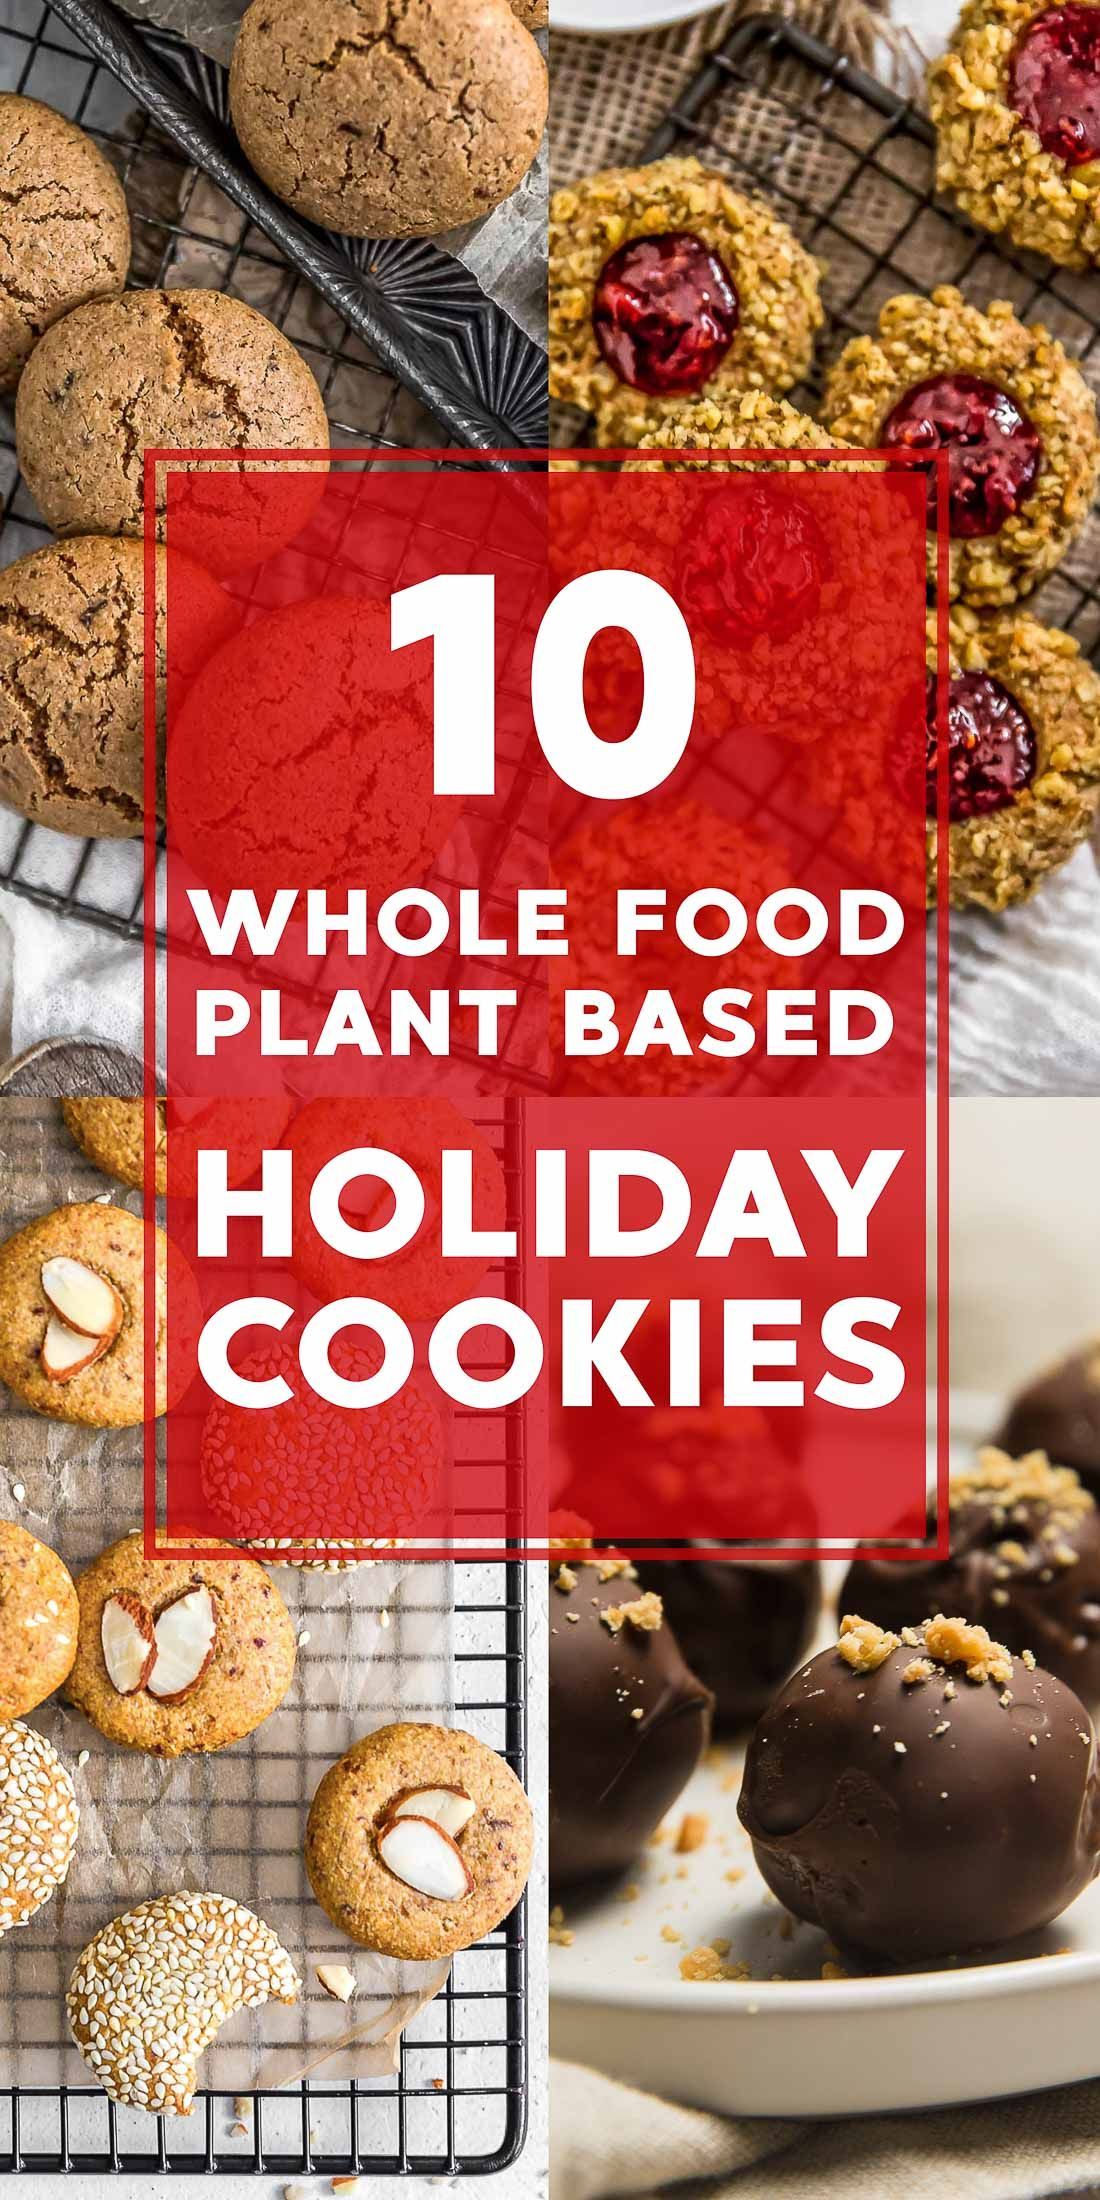 10 Whole Food Plant Based Holiday Cookie Recies